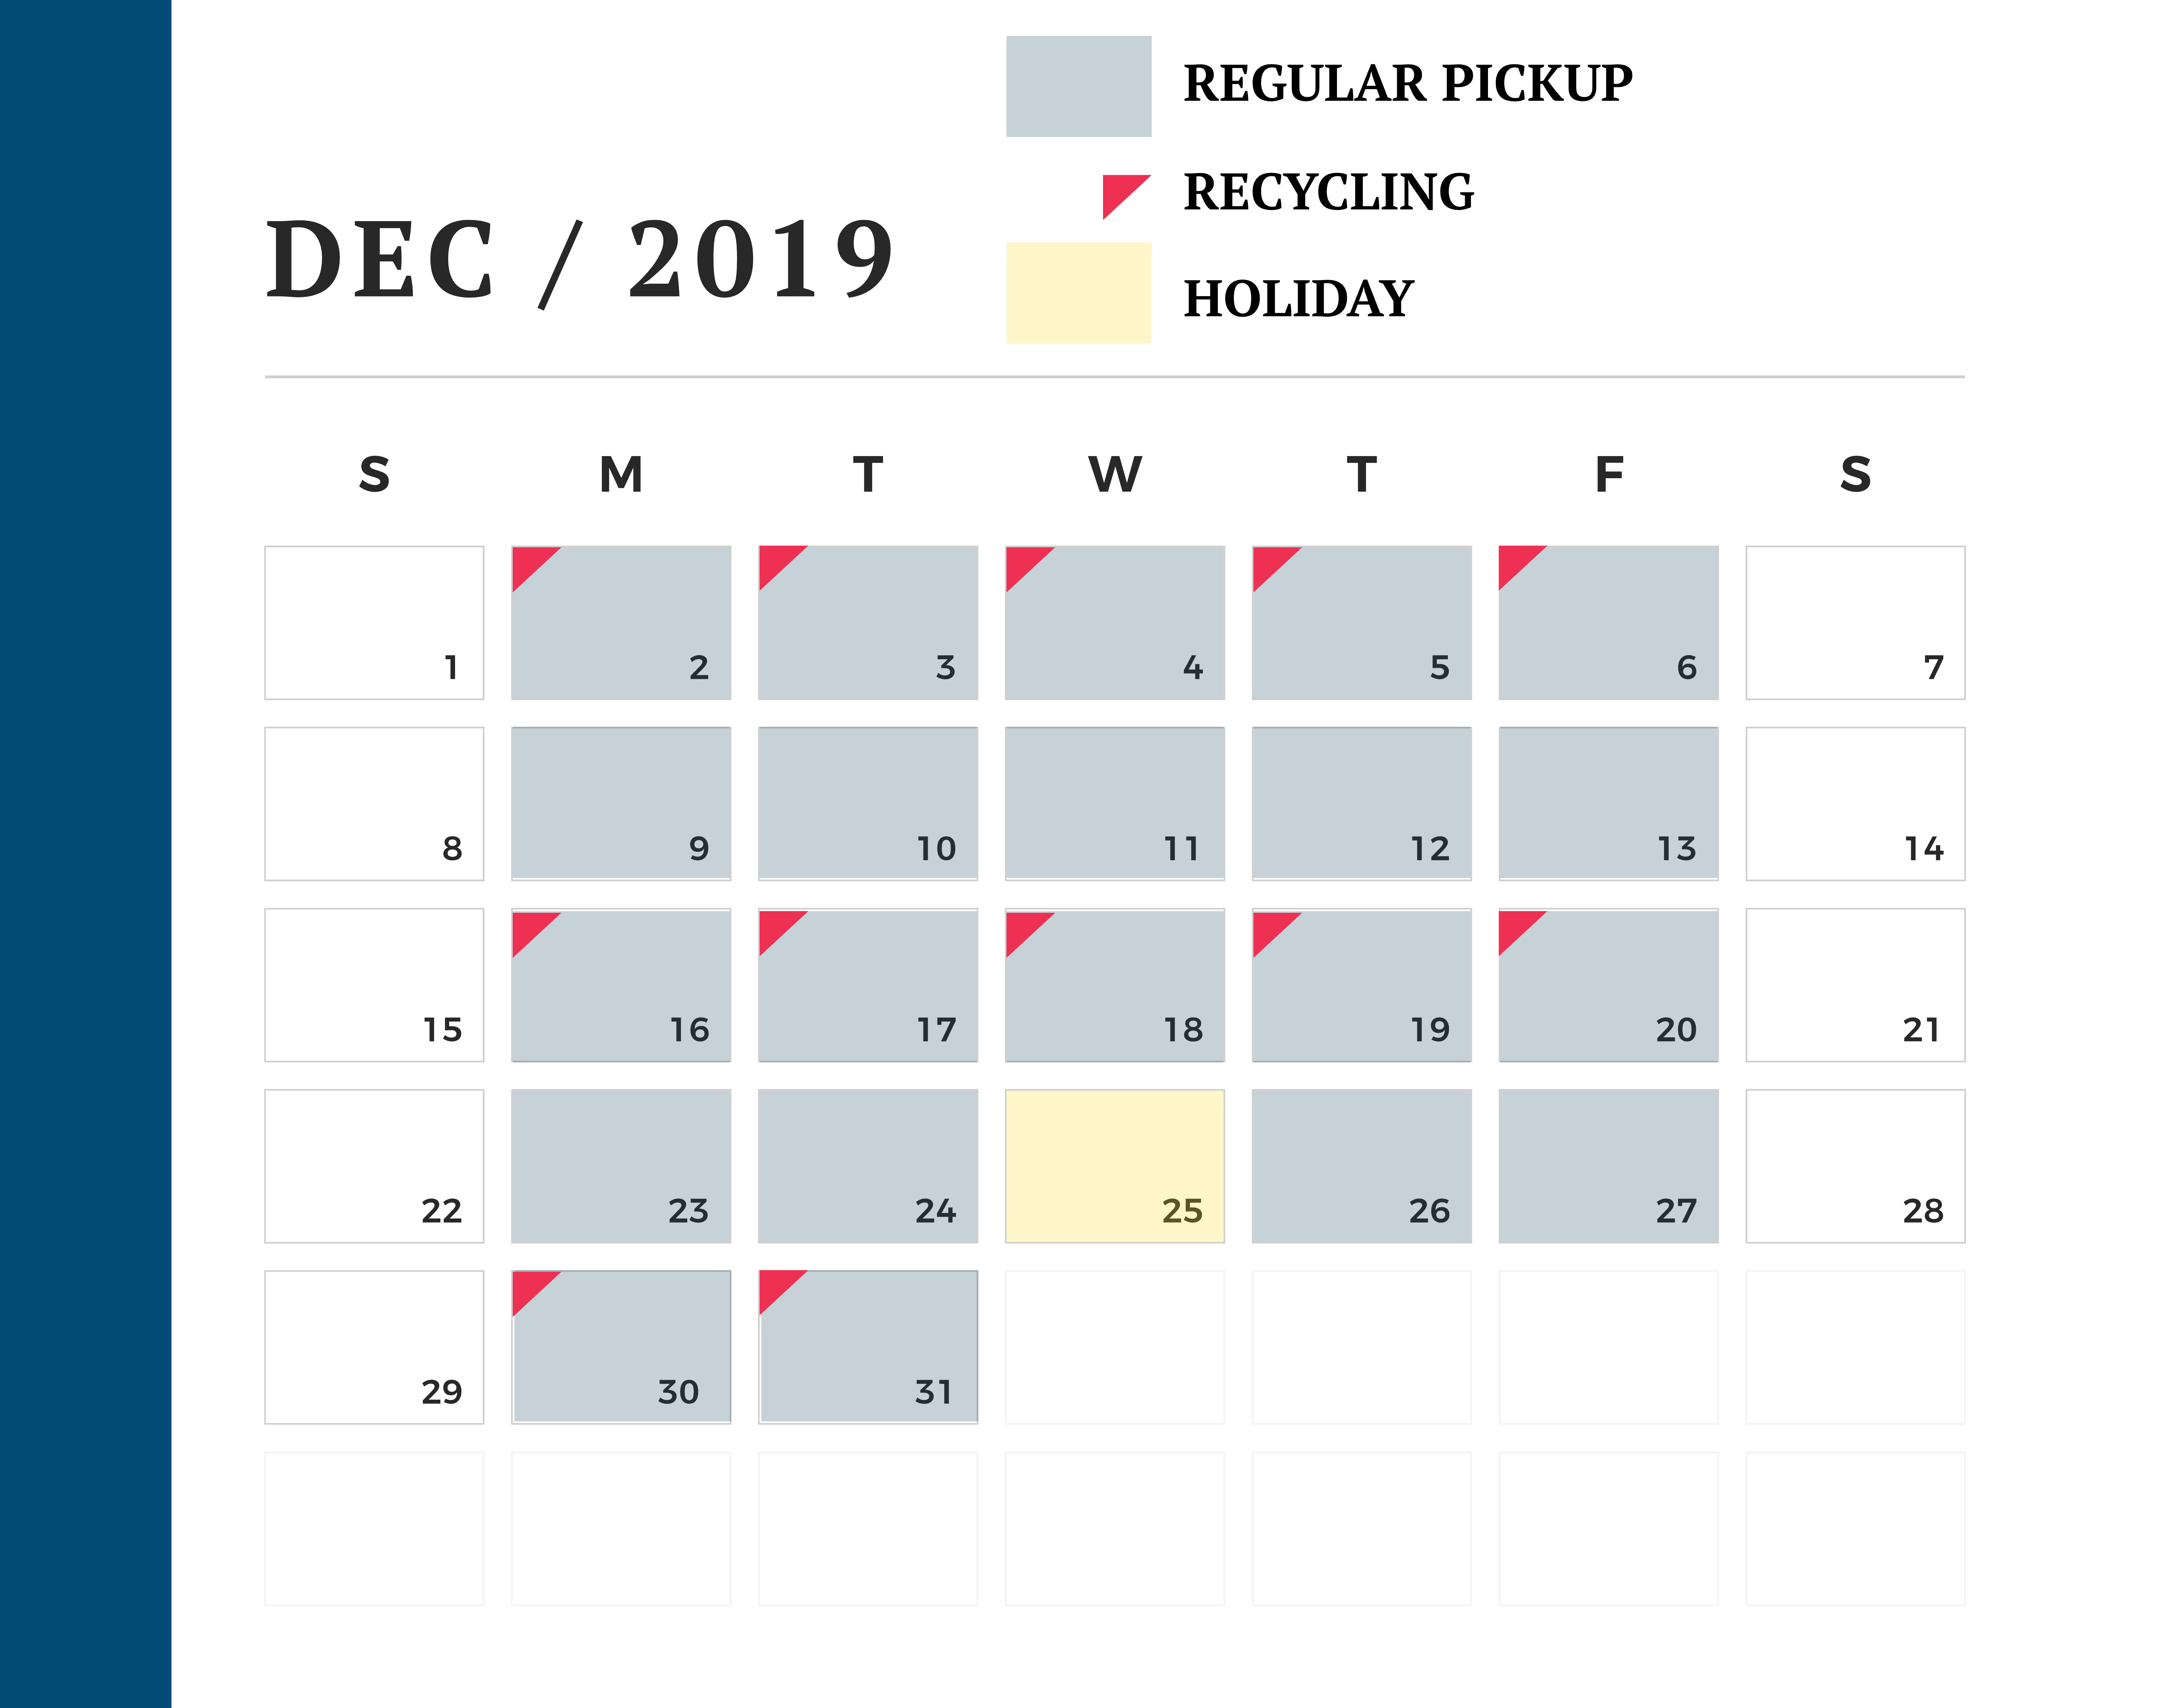 December waste pickup trash calendar